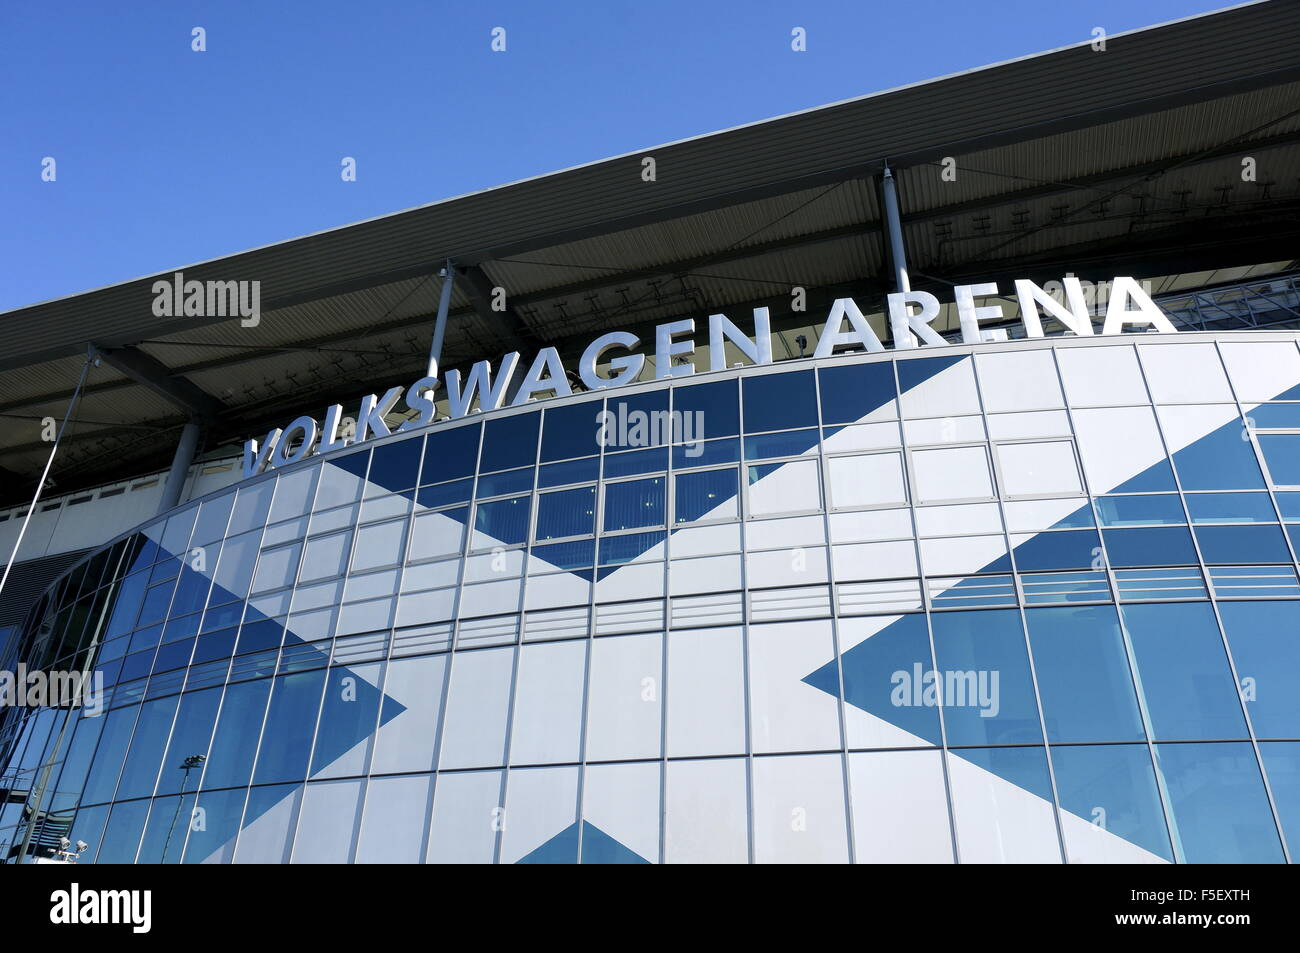 Wolfsburg, Germany. 01st Oct, 2015. The facade of the Volkswagen Arena on a street in Wolfsburg, Germany, 01 October - Stock Image